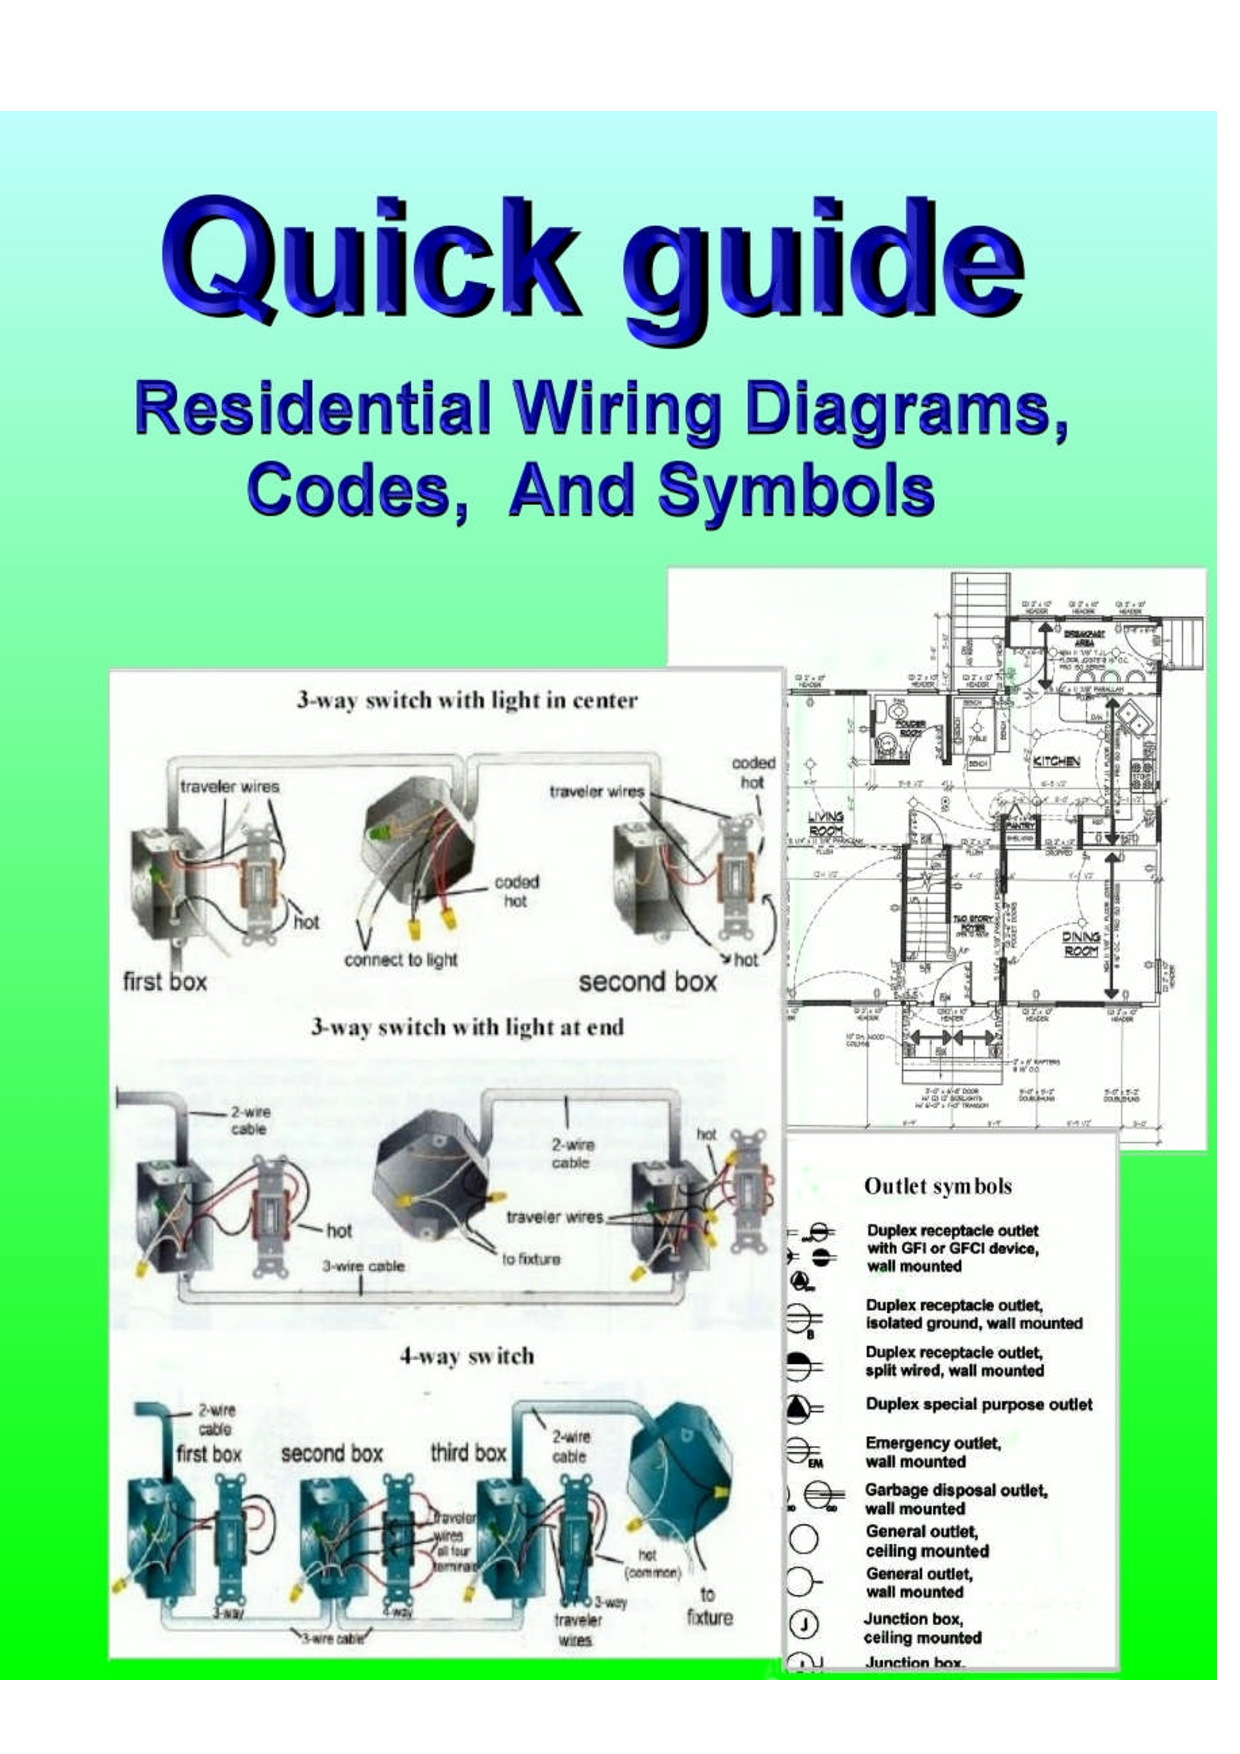 Home Electrical Wiring Diagramspdf Download Legal Documents 39 Ground Wire Diy Chatroom Improvement Forum Pages With Many Diagrams And Illustrations A Step By Guide